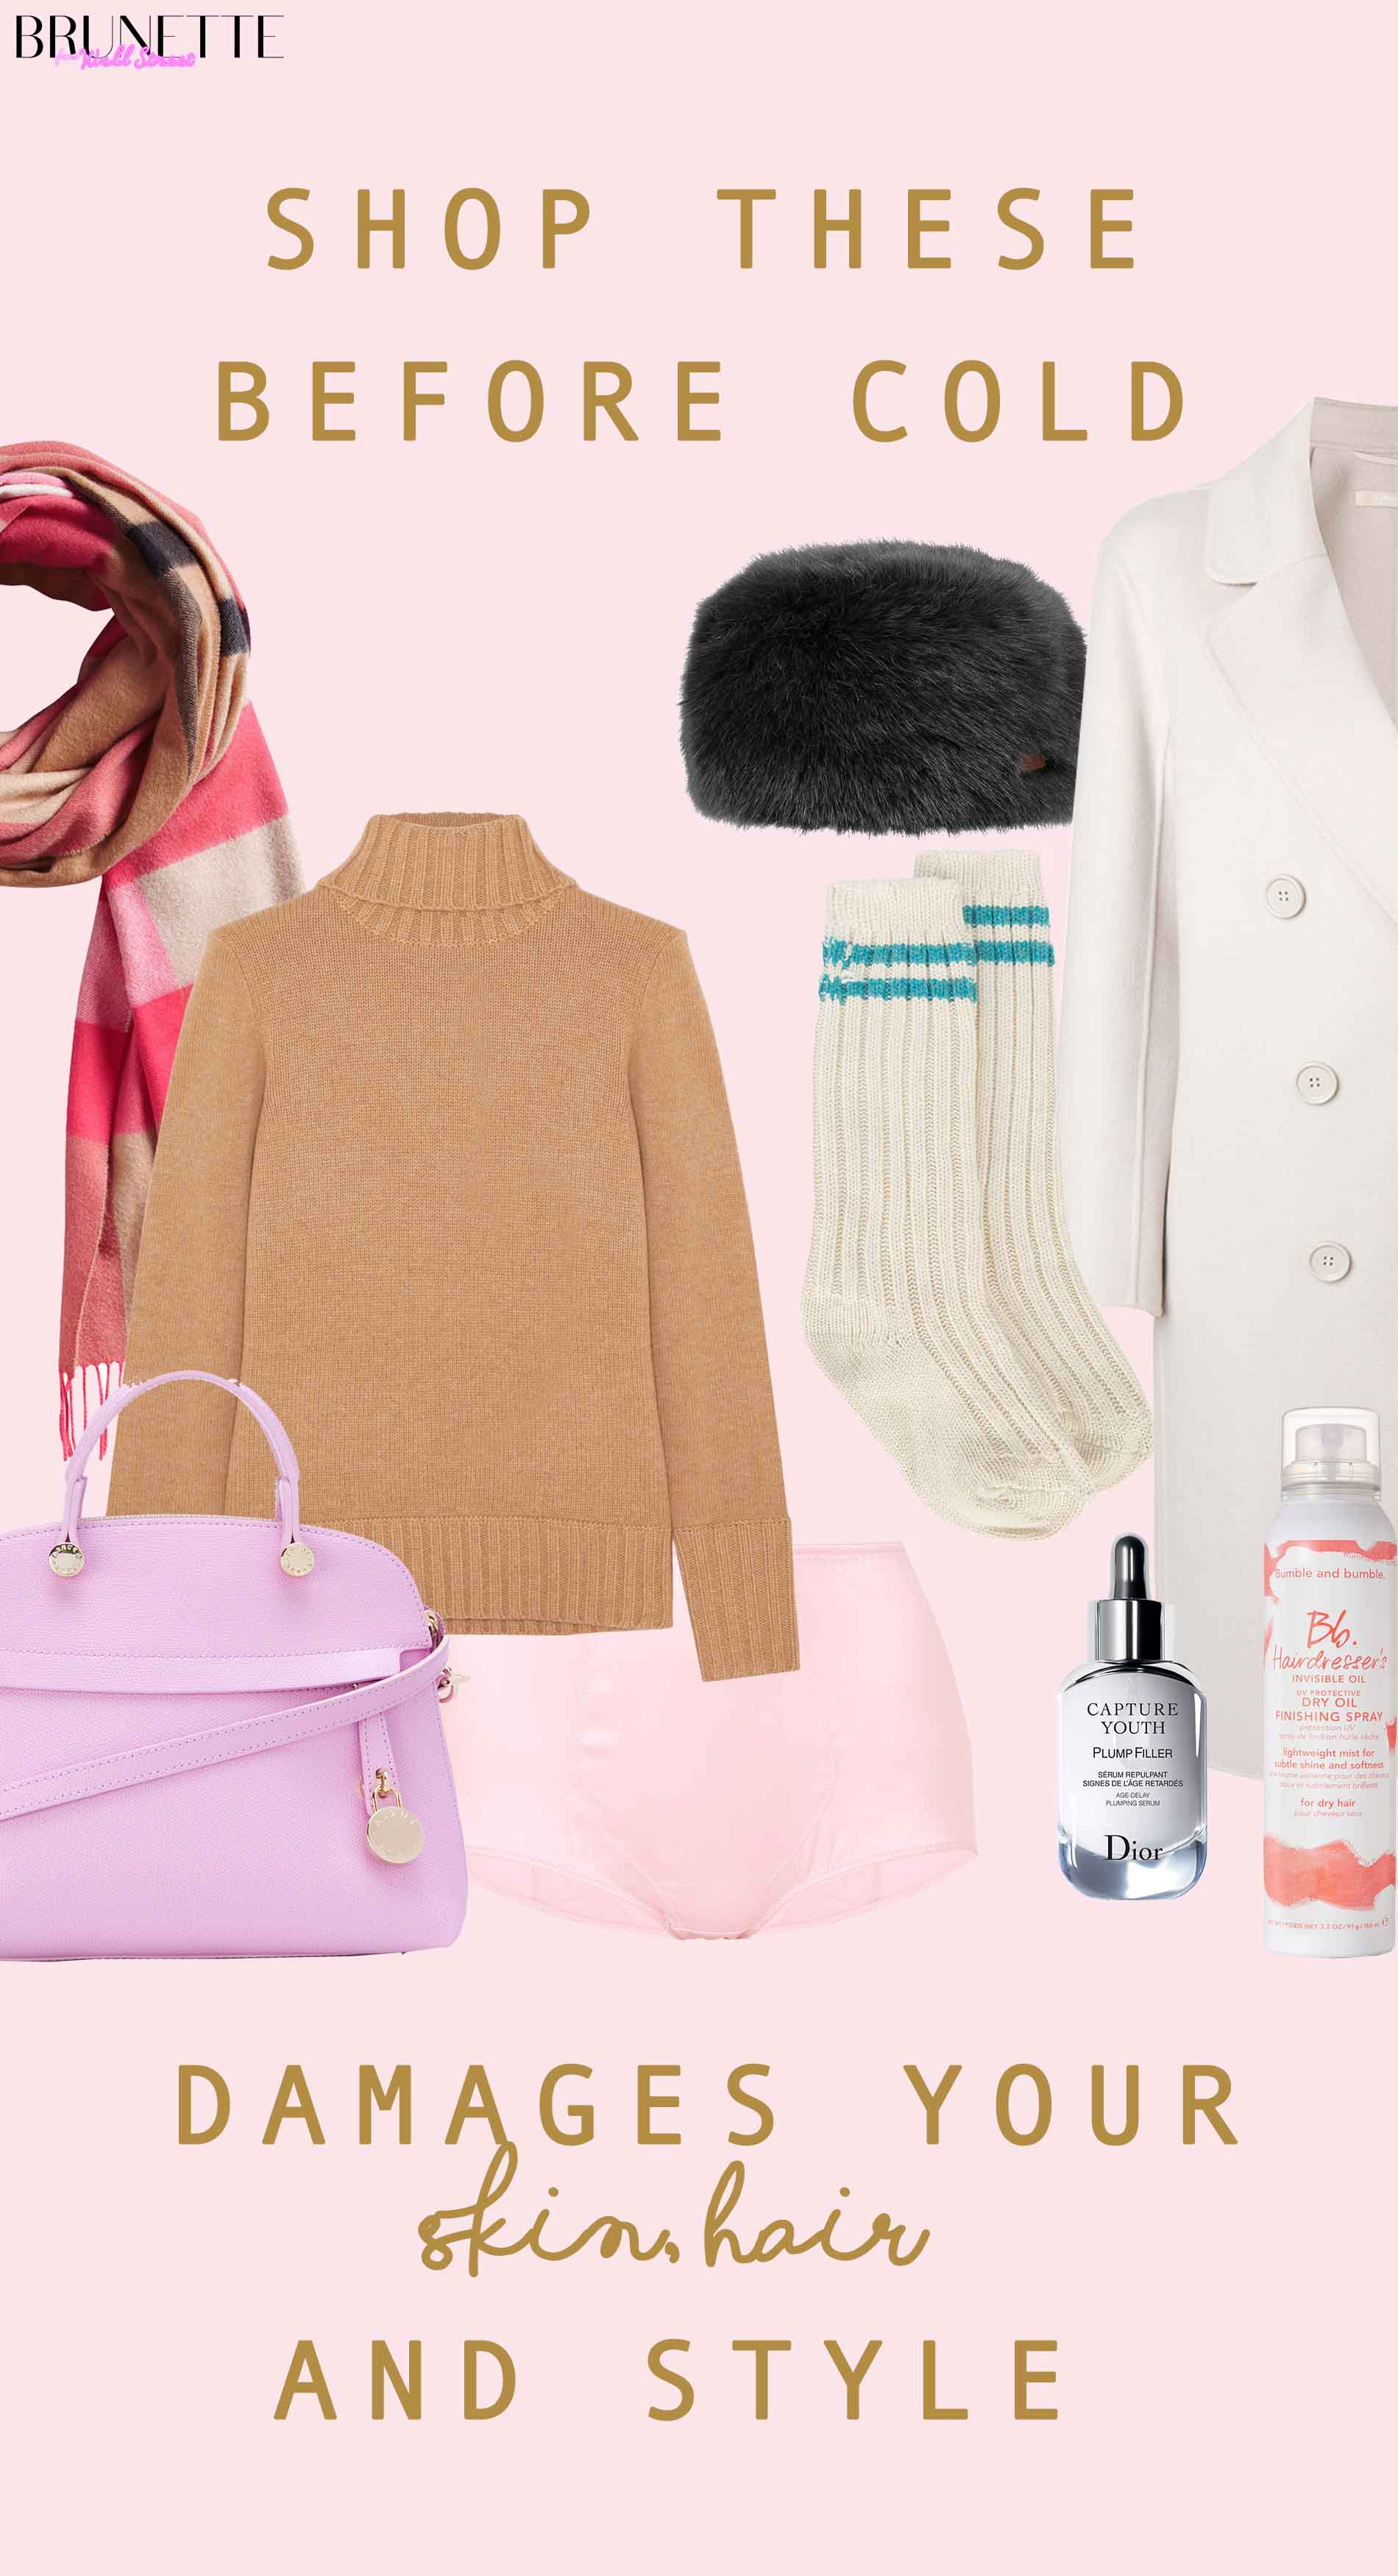 Furla pink tote bag, J.Crew camel sweater, Maxmara coat, Burberry scarf, Dior serum with text overlay Shop these before cold damages your skin, hair ansd style